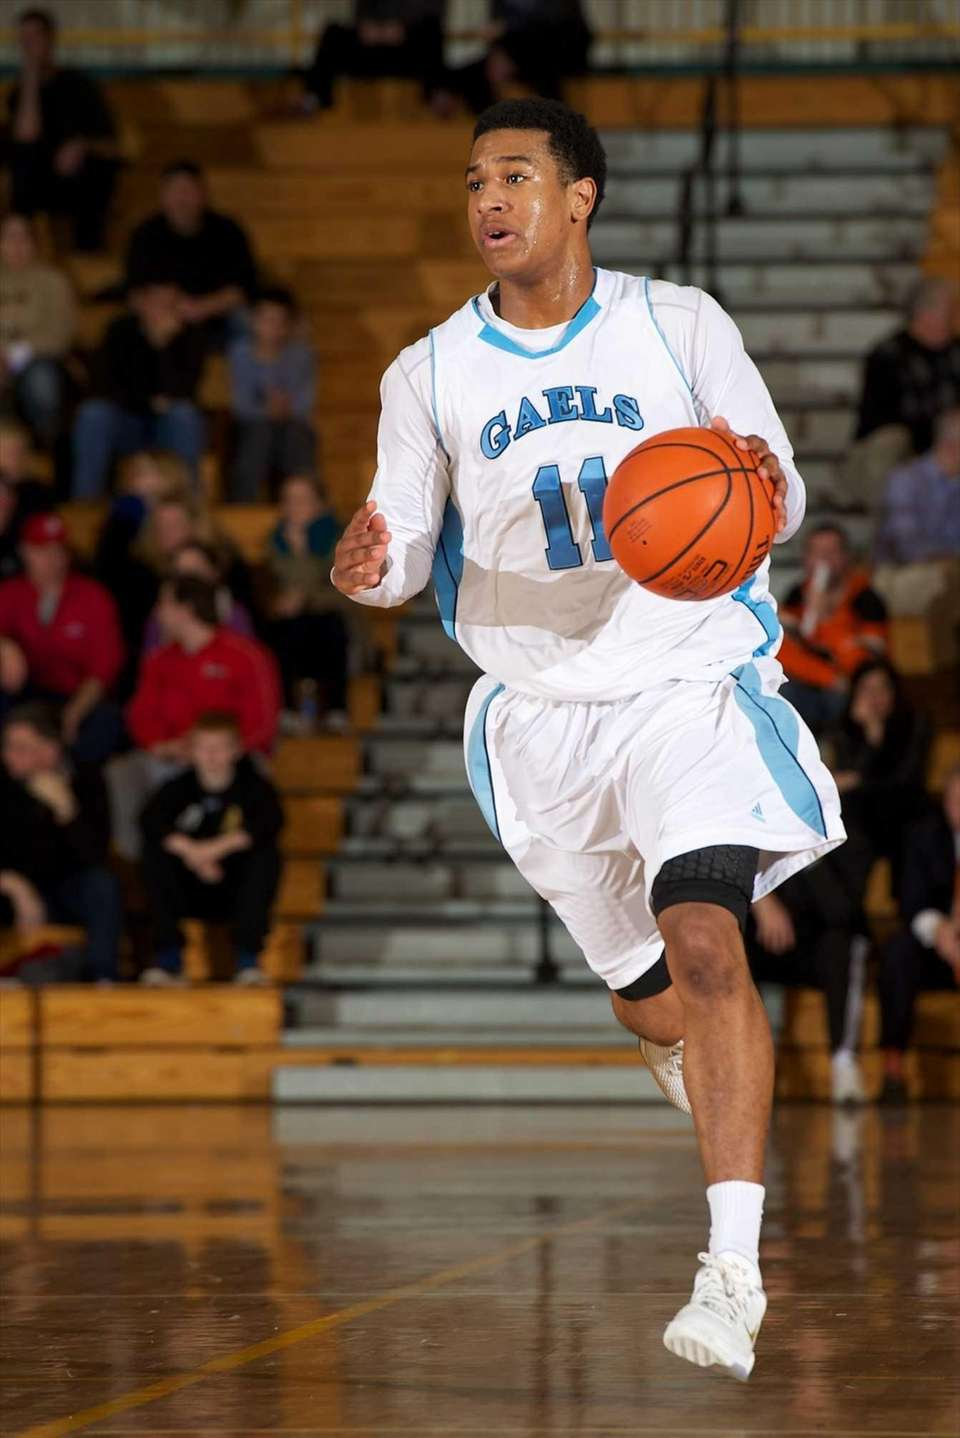 St. Mary's guard Devonte Green (11) drives to